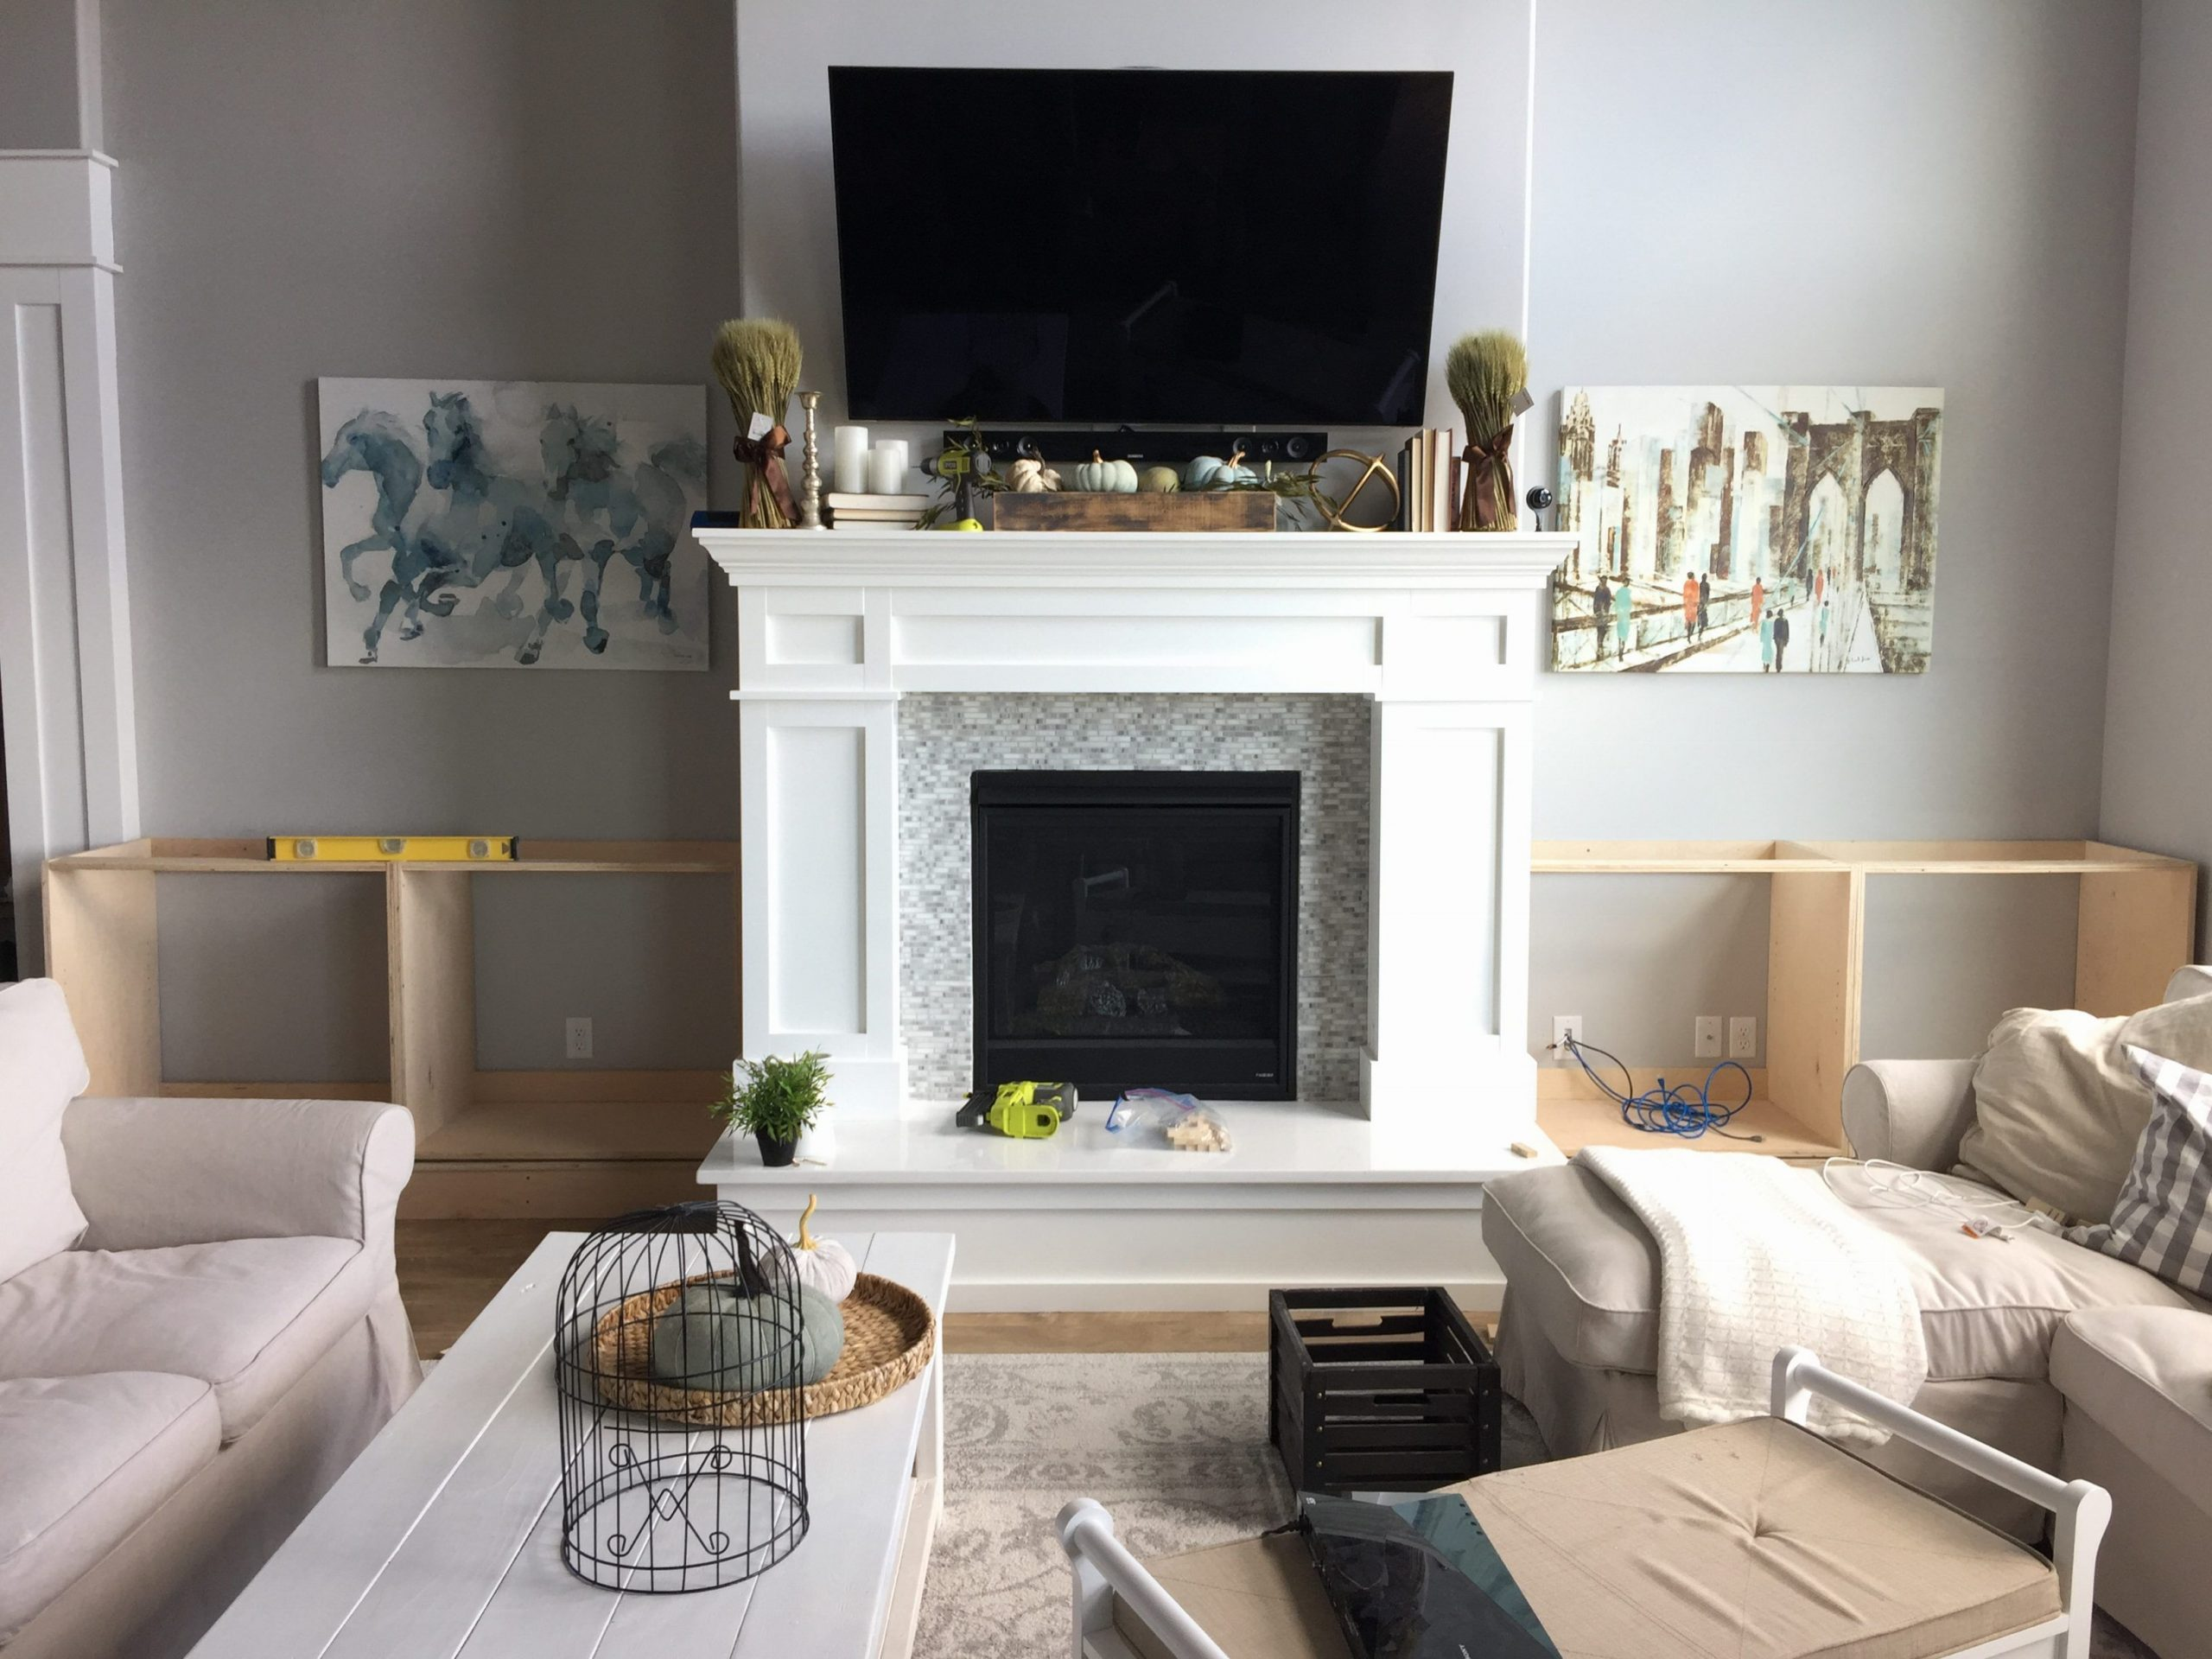 Diy Built In Cabinets Around The Fireplace Part 1 within sizing 3263 X 2447